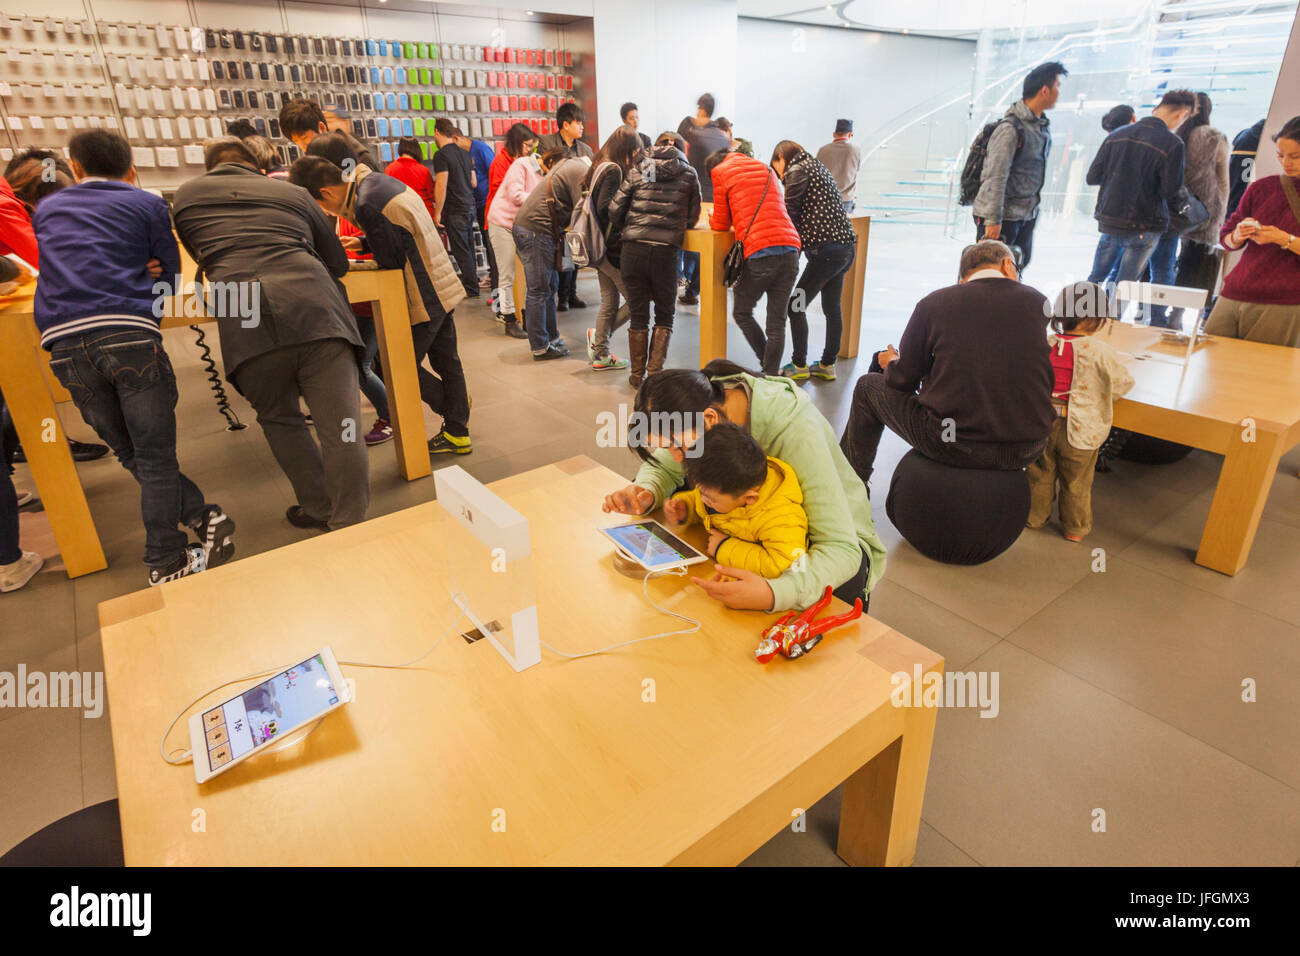 China, Shanghai, Nanjing Road, Interior of Apple Store, Mother and Child Playing with Computer Stock Photo